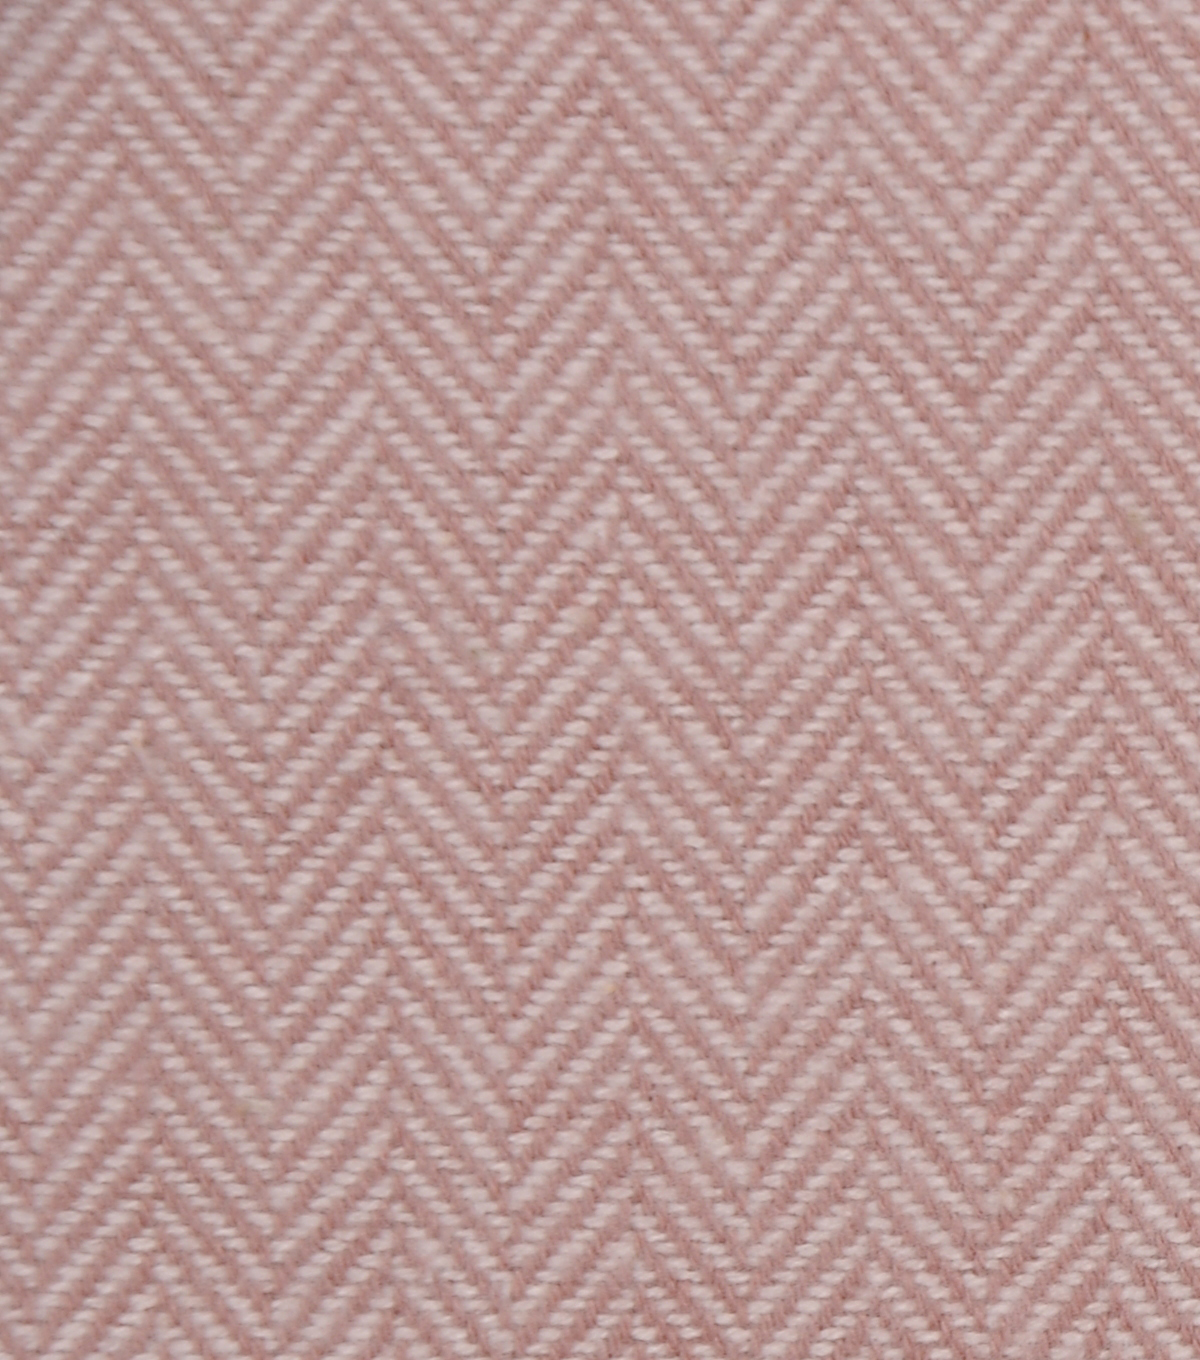 Plaiditudes Brushed Cotton Apparel Fabric -Ivory & Pink Herringbone